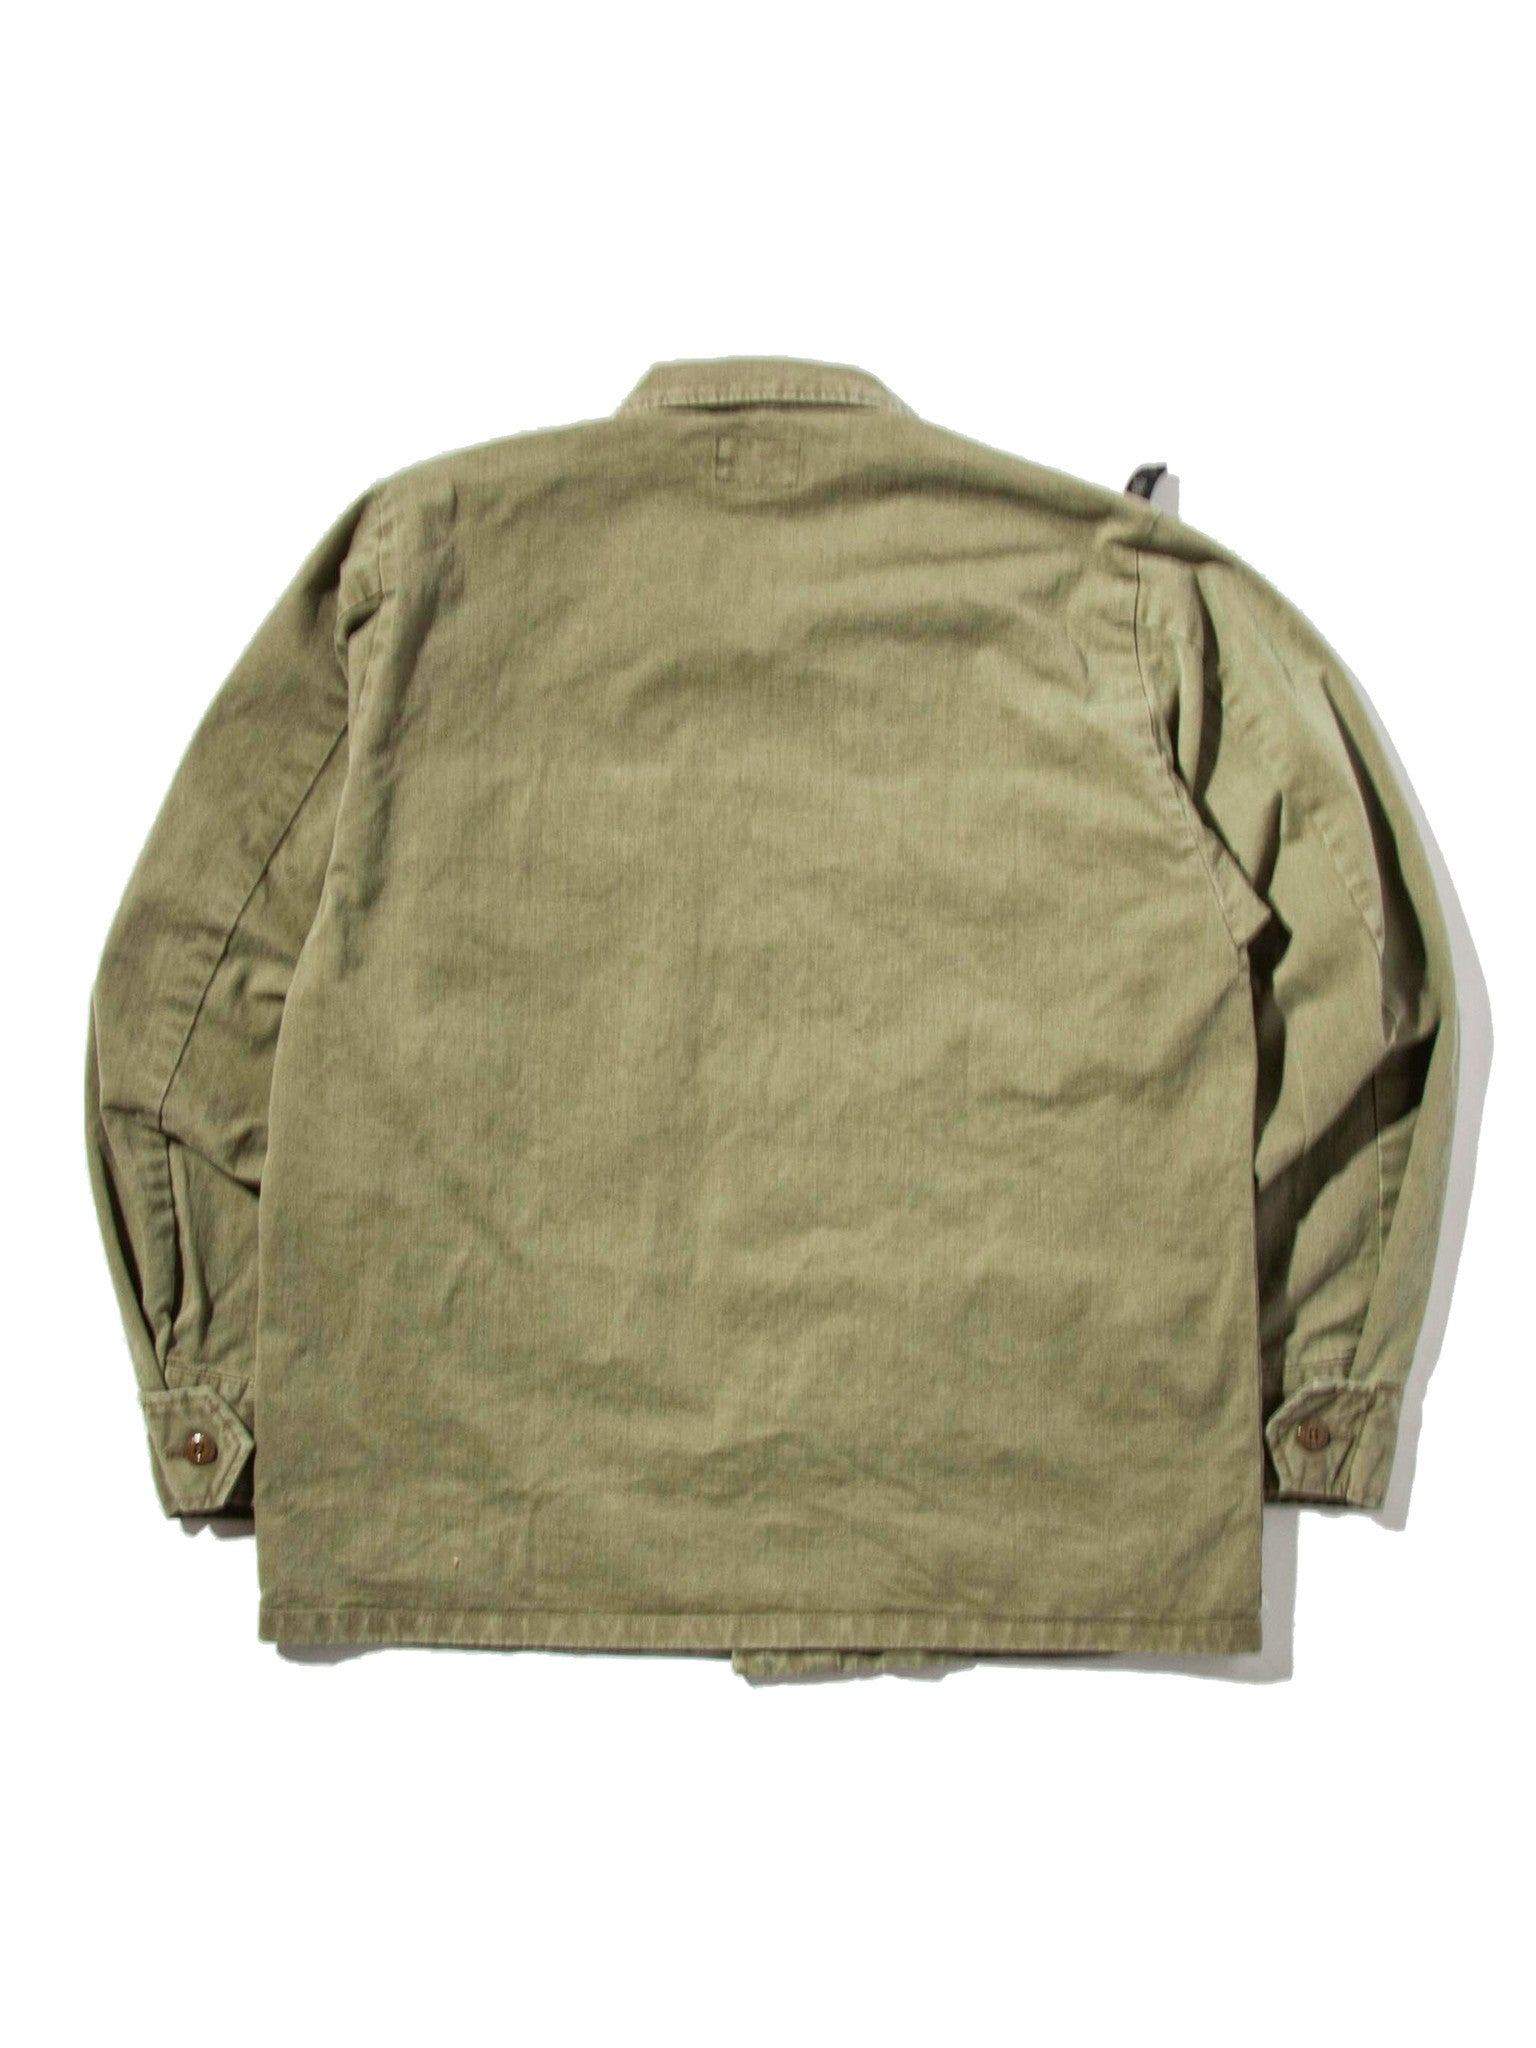 Olive Drab Jungle Shirt (Cotton Chino) 5